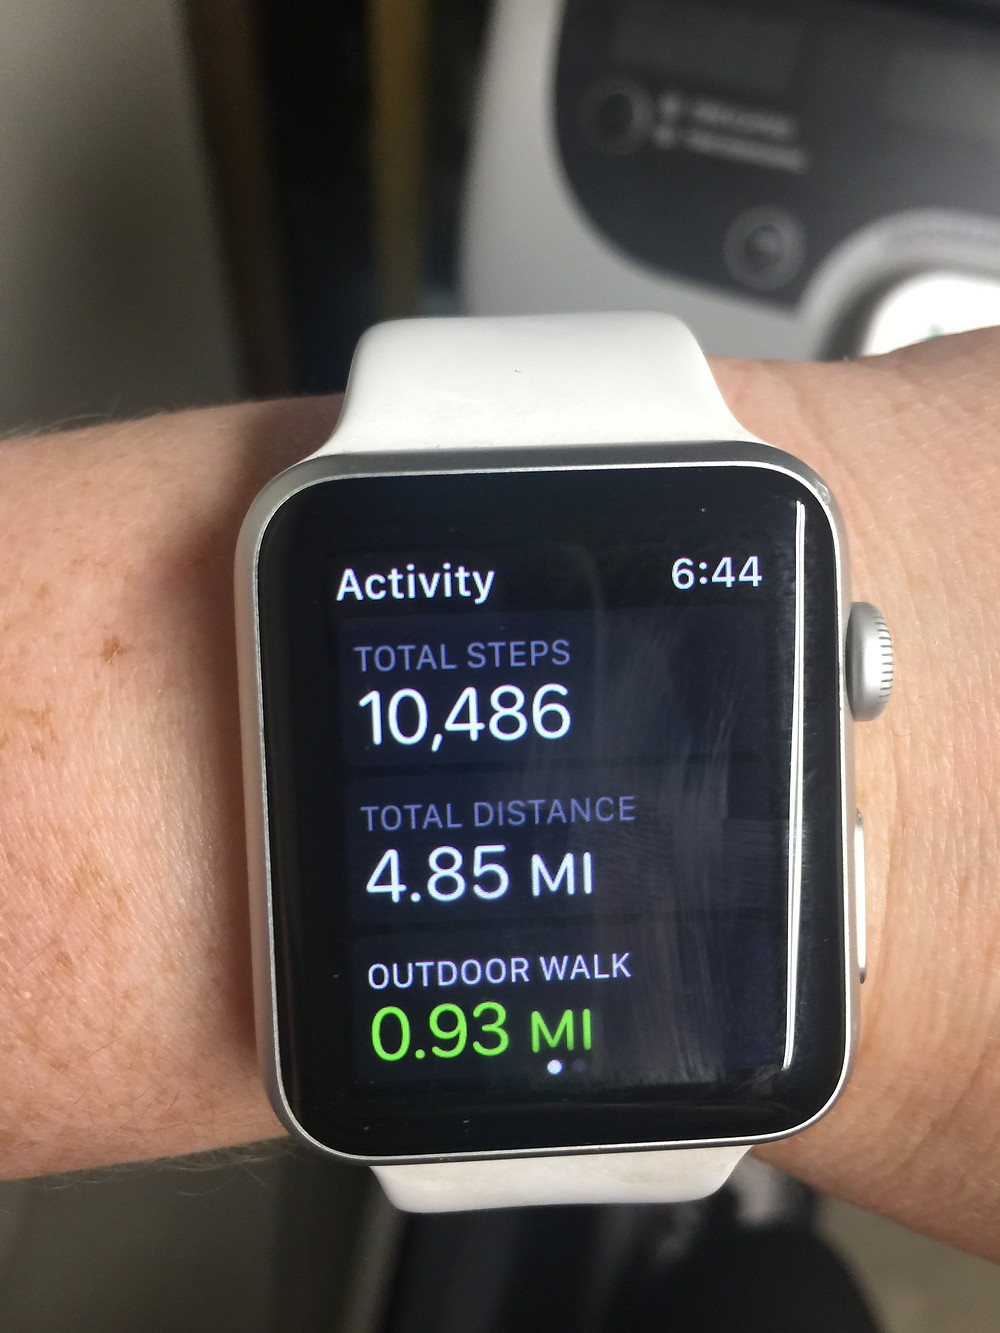 Picture of Apple Watch with image of daily step activity of 10,486 steps